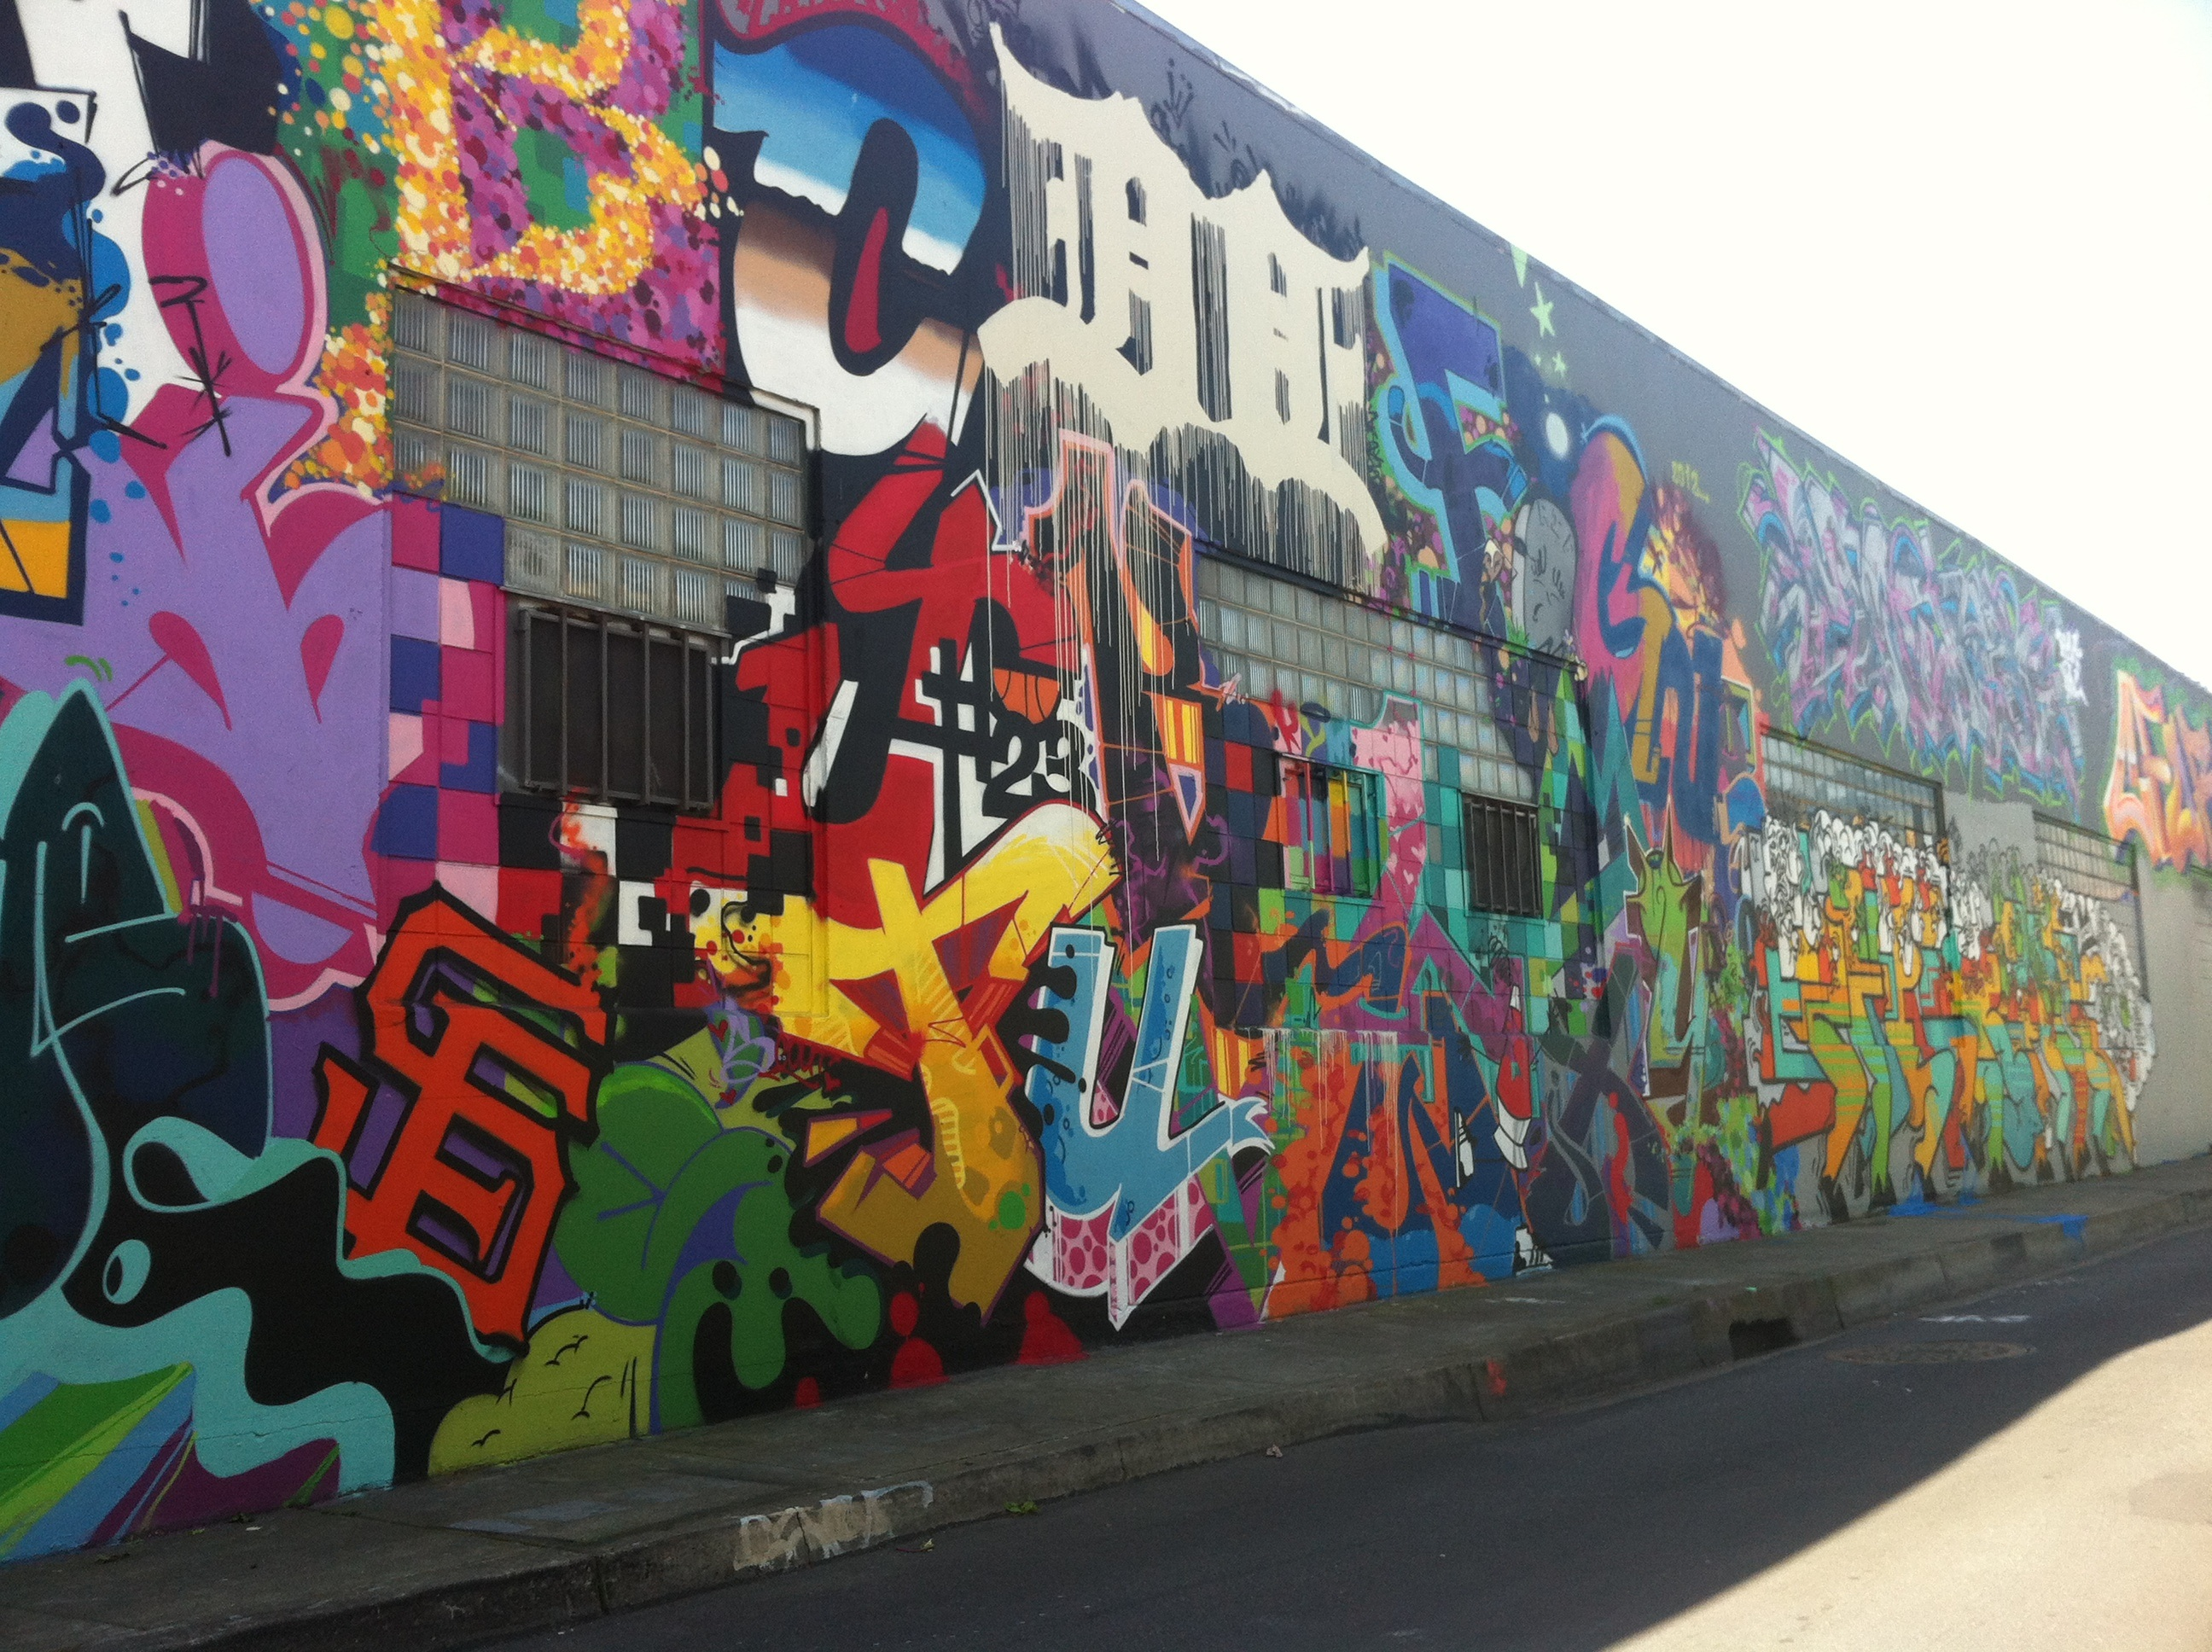 Off the Wall: Can Graffiti Live Within the Law?